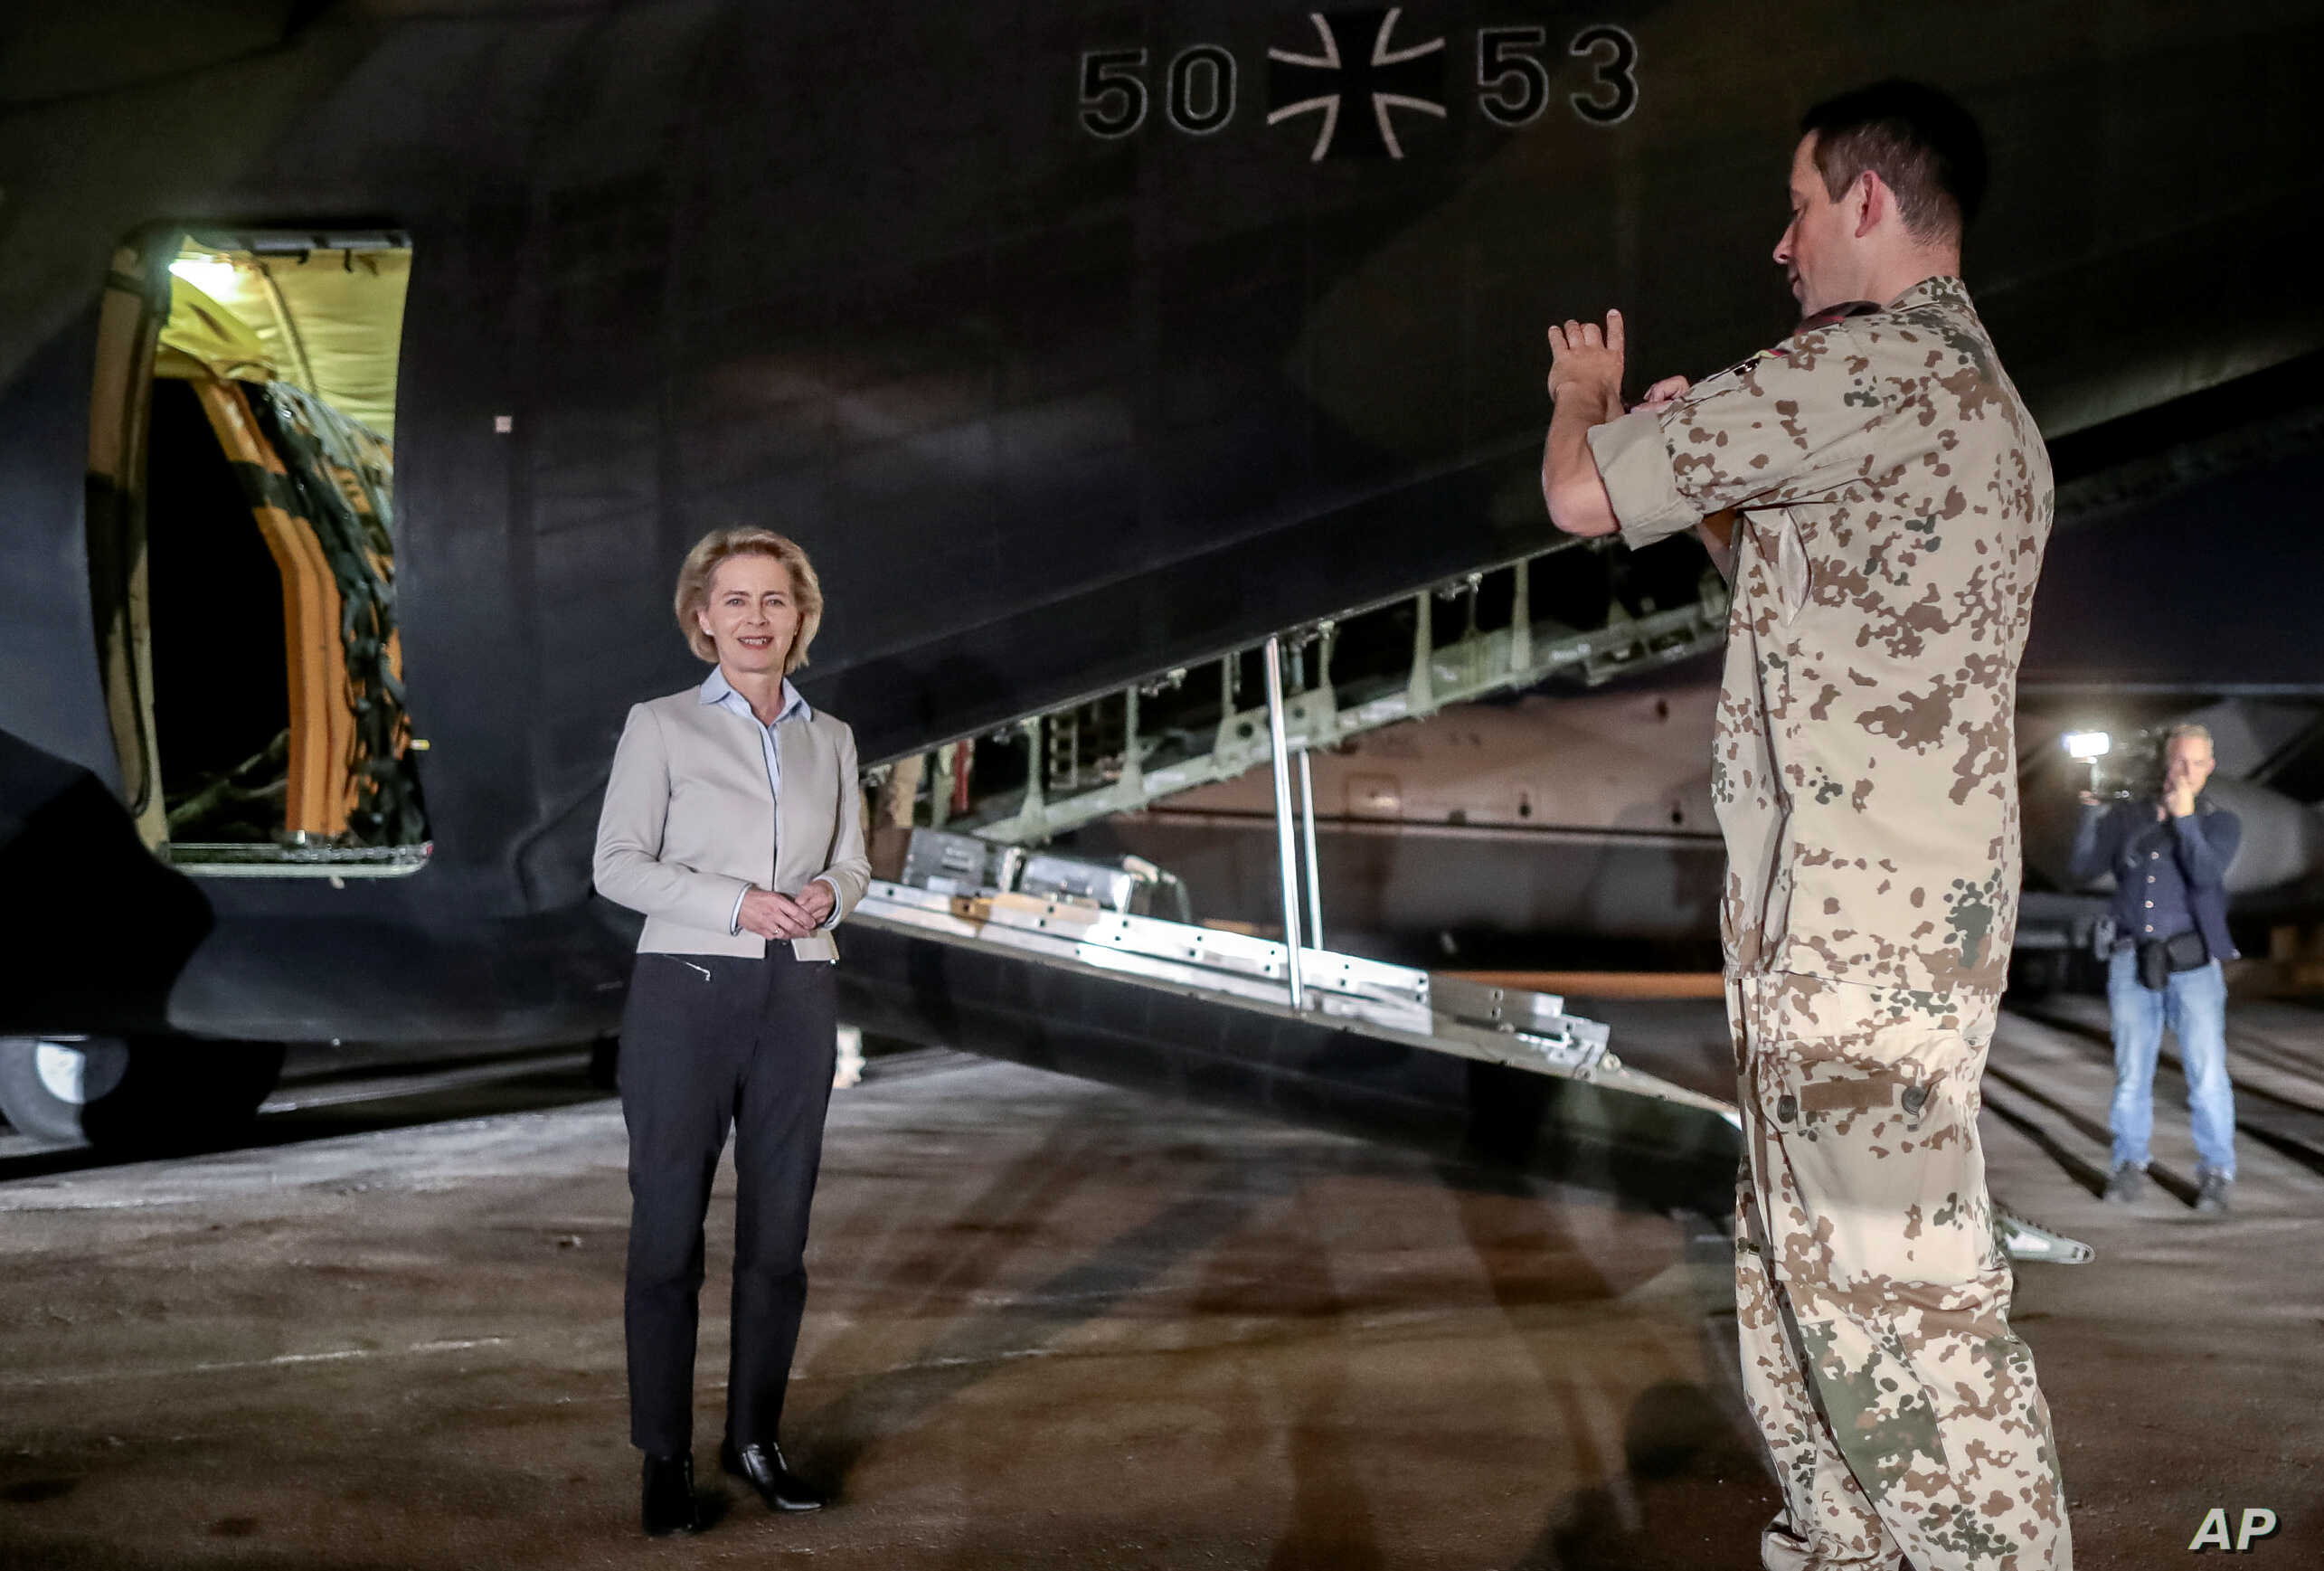 FILE - German Defense Minister Ursula von der Leyen poses in front of a German Air Force plane in Amman, Jordan, Sept. 21, 2016, on her way to Iraq.